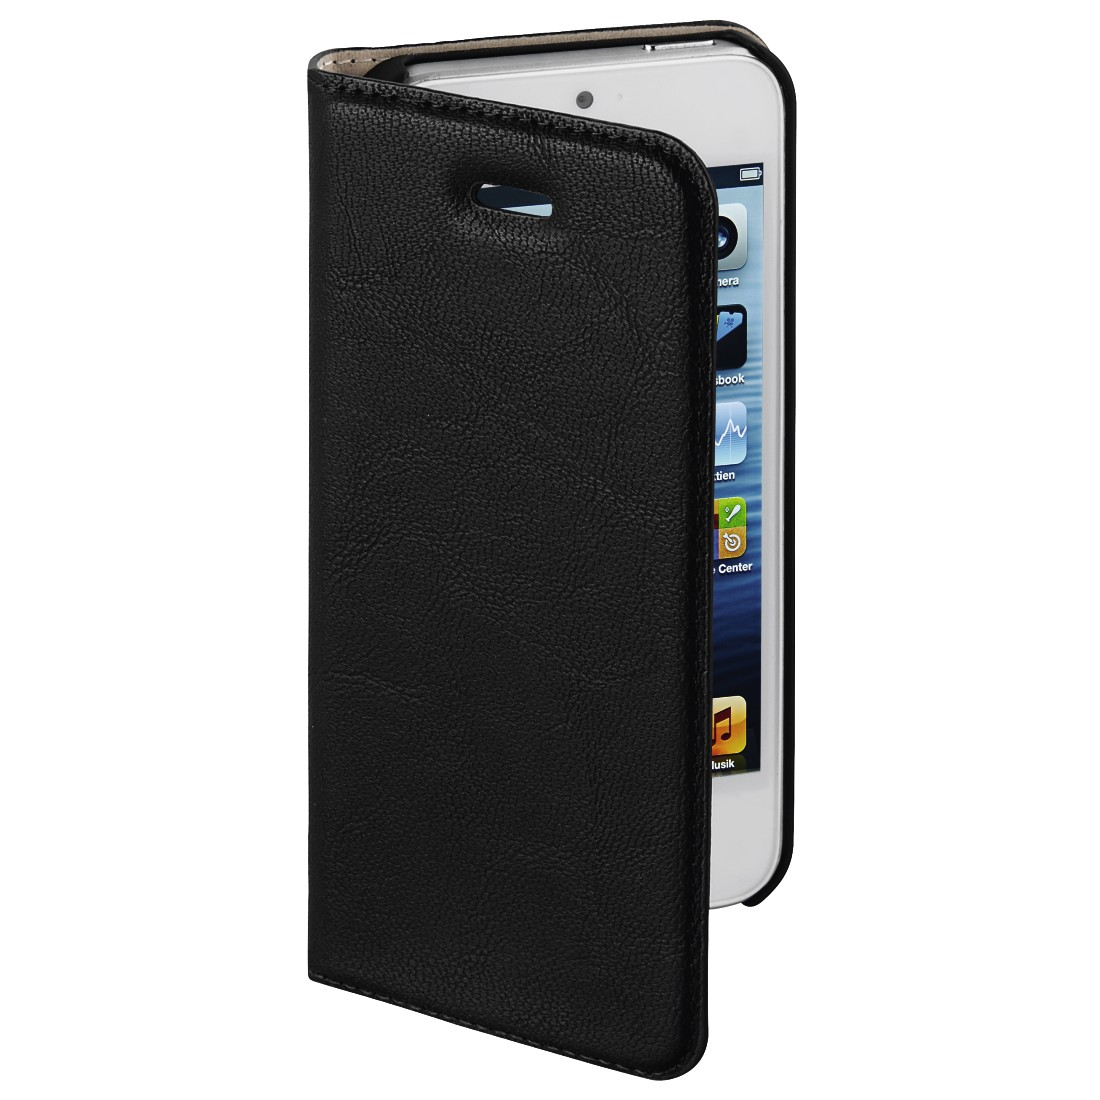 "awx3 High-Res Appliance 3 - Hama, Étui portefeuille ""Guard Case"" pour Apple iPhone 5/5s/SE, noir"